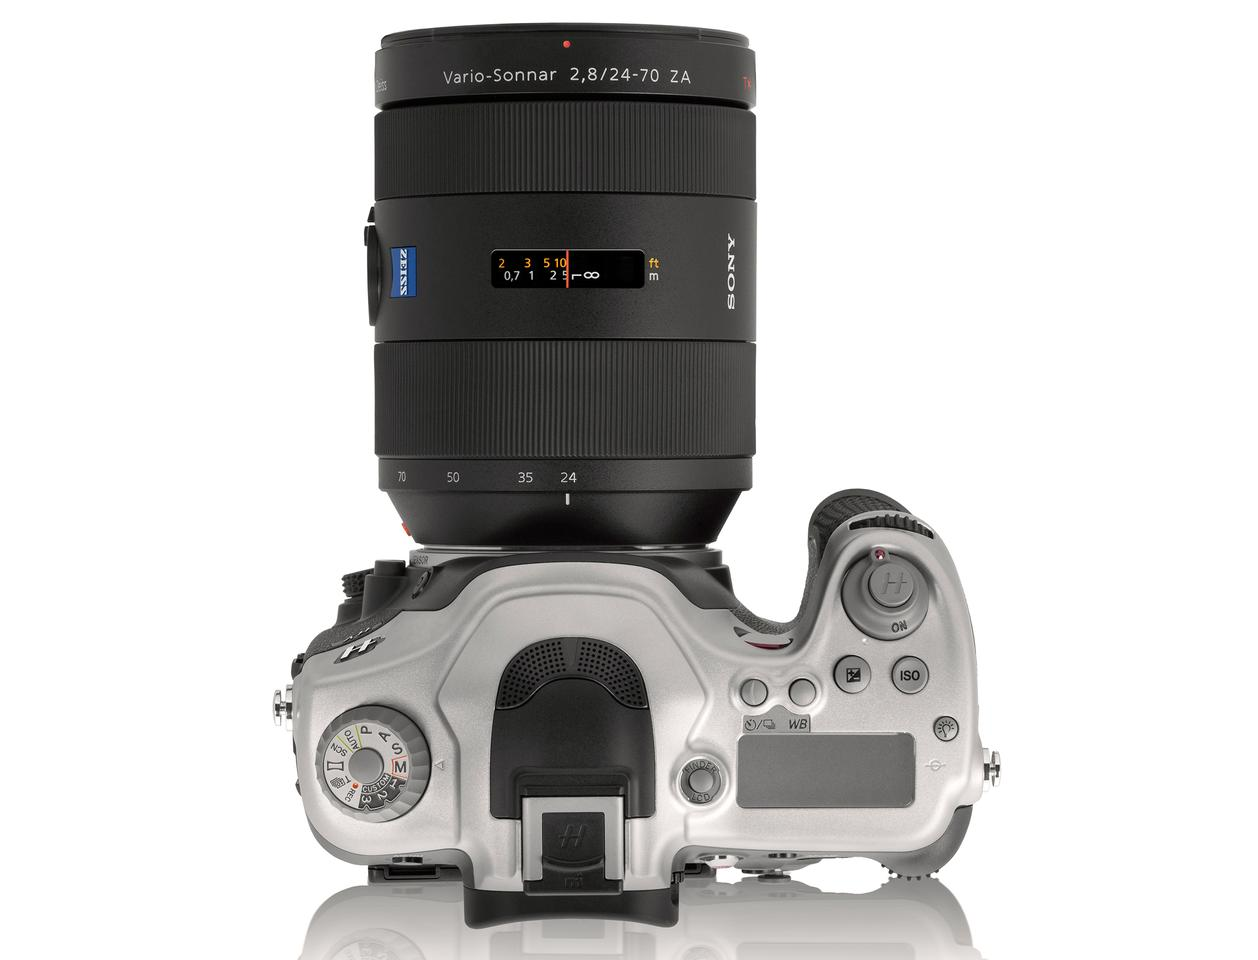 Where the Hasselblad HV differs to the A99, and arguably improves on it, is the two-tone design which uses machined high-grade aluminum